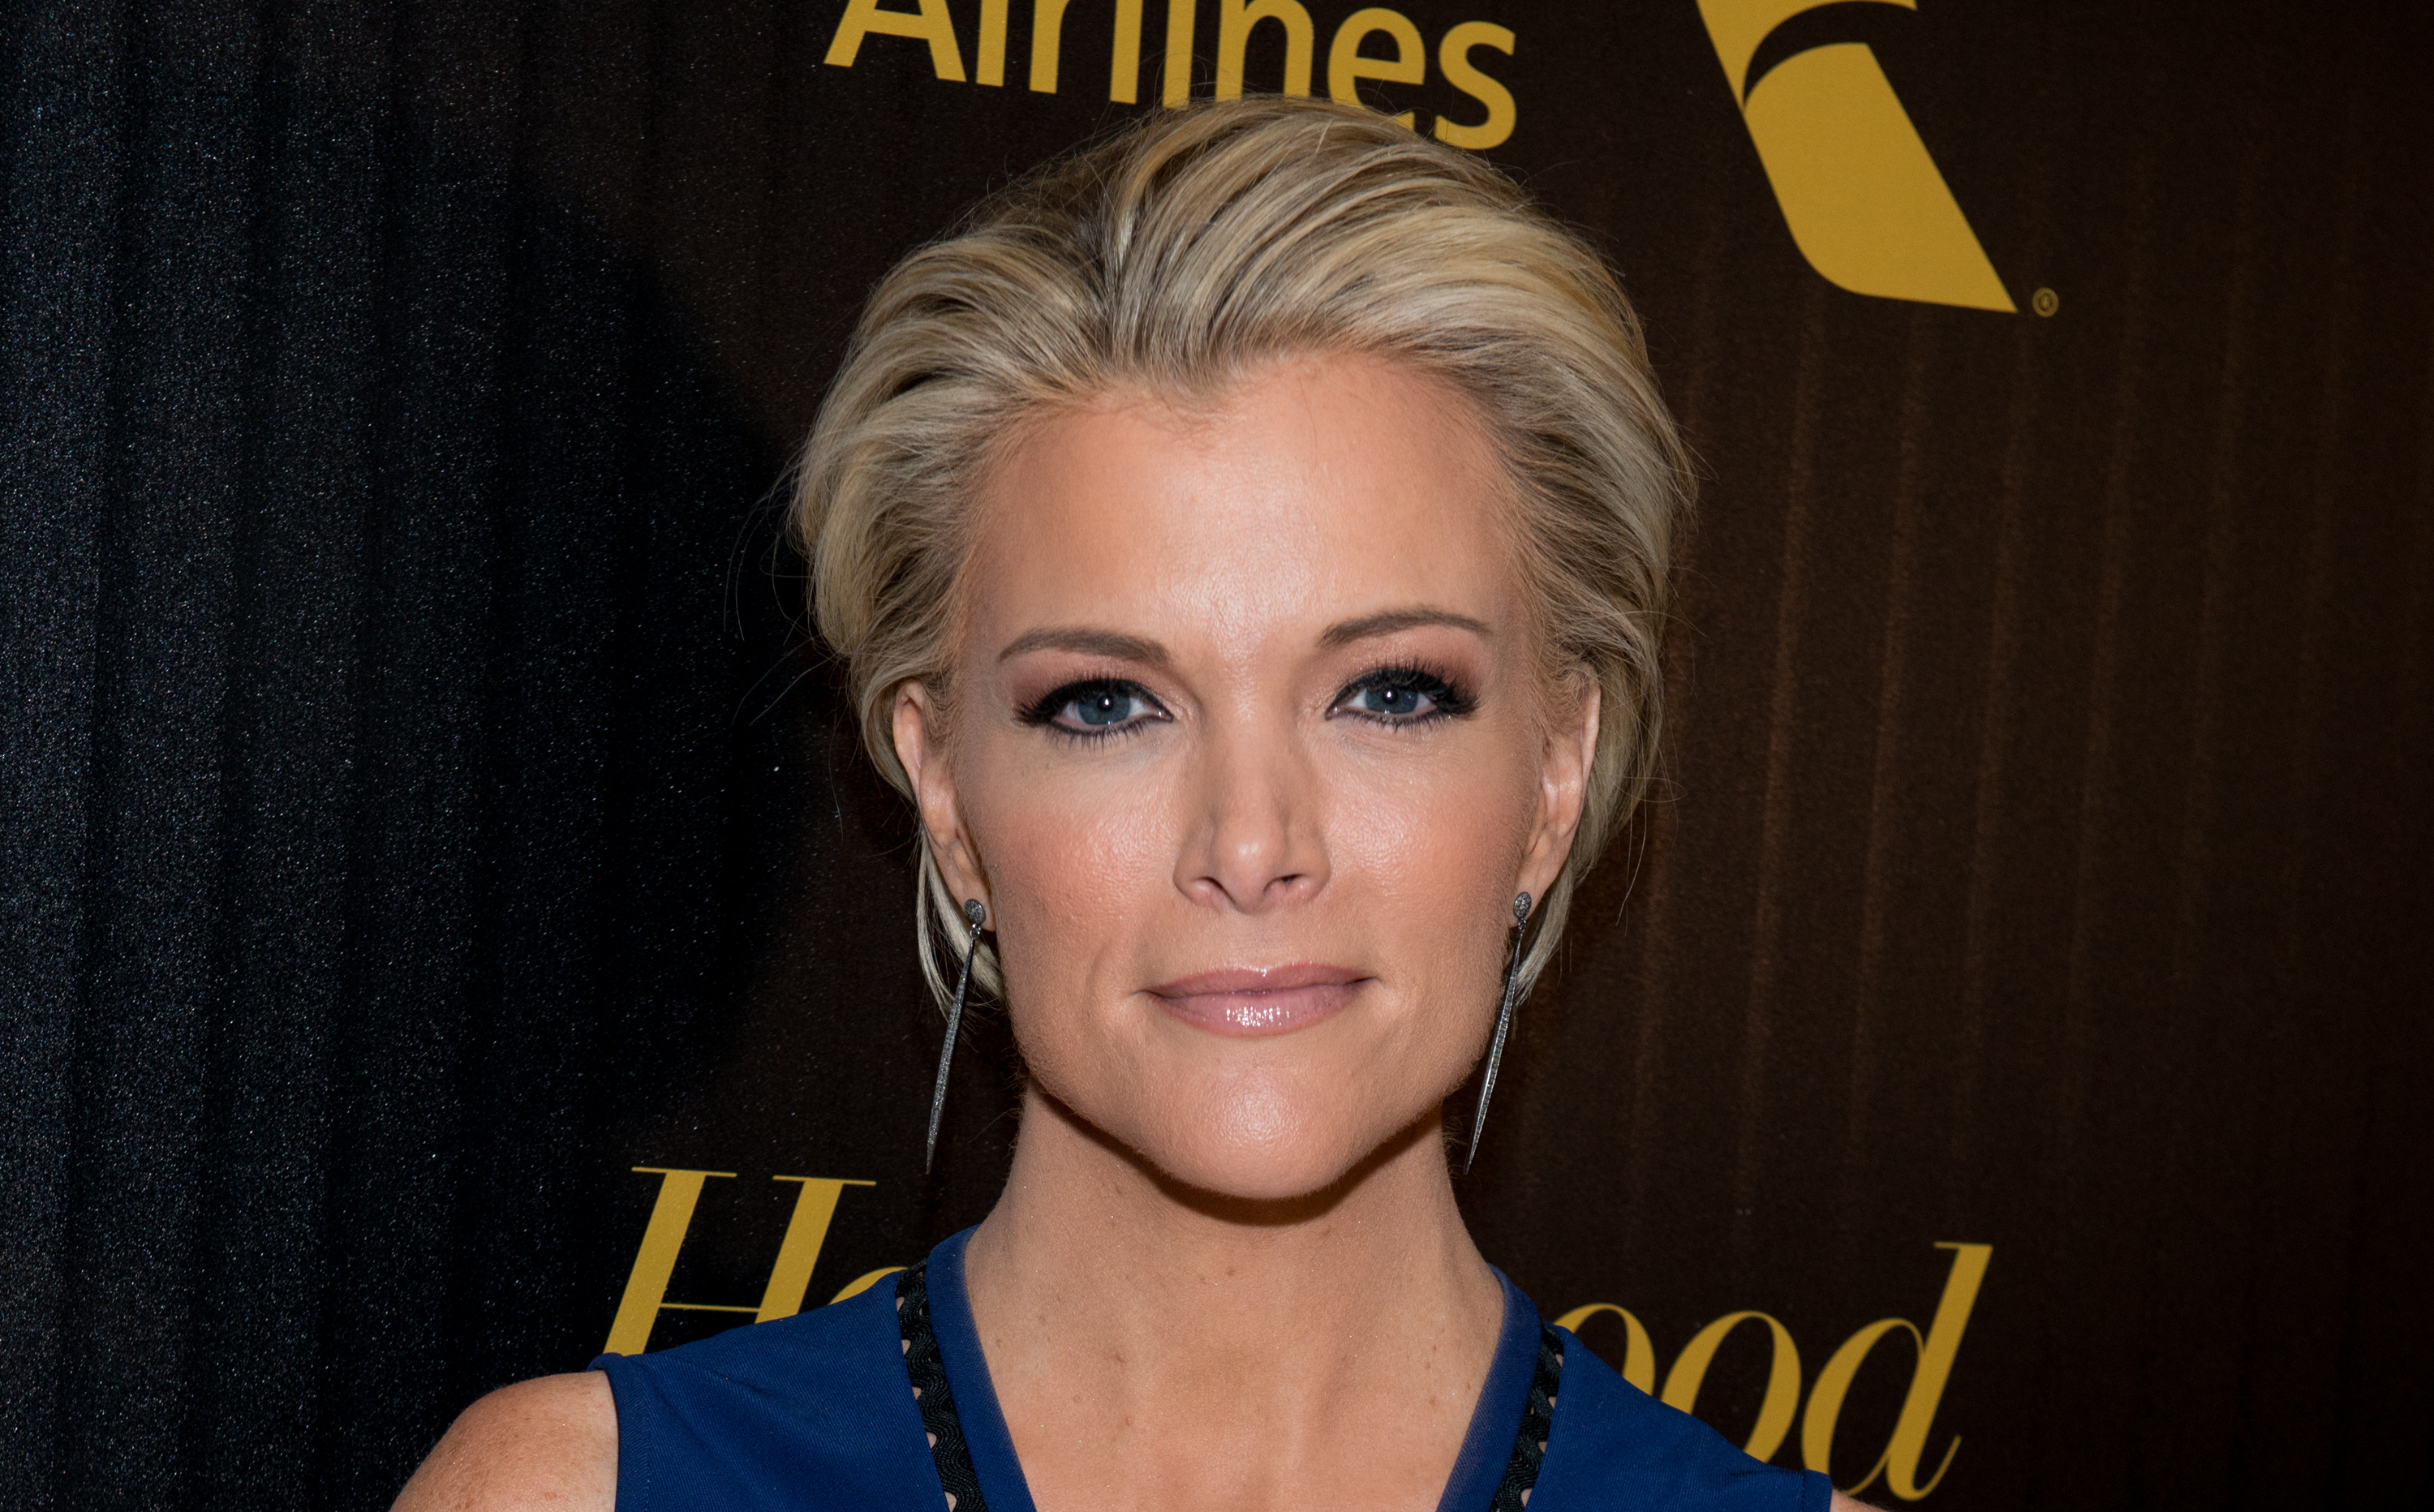 Journalist Megyn Kelly attends The Hollywood Reporter's 2016 35 Most Powerful People in Media at Four Seasons Restaurant on April 6, 2016 in New York City.  (Photo by Noam Galai/WireImage)